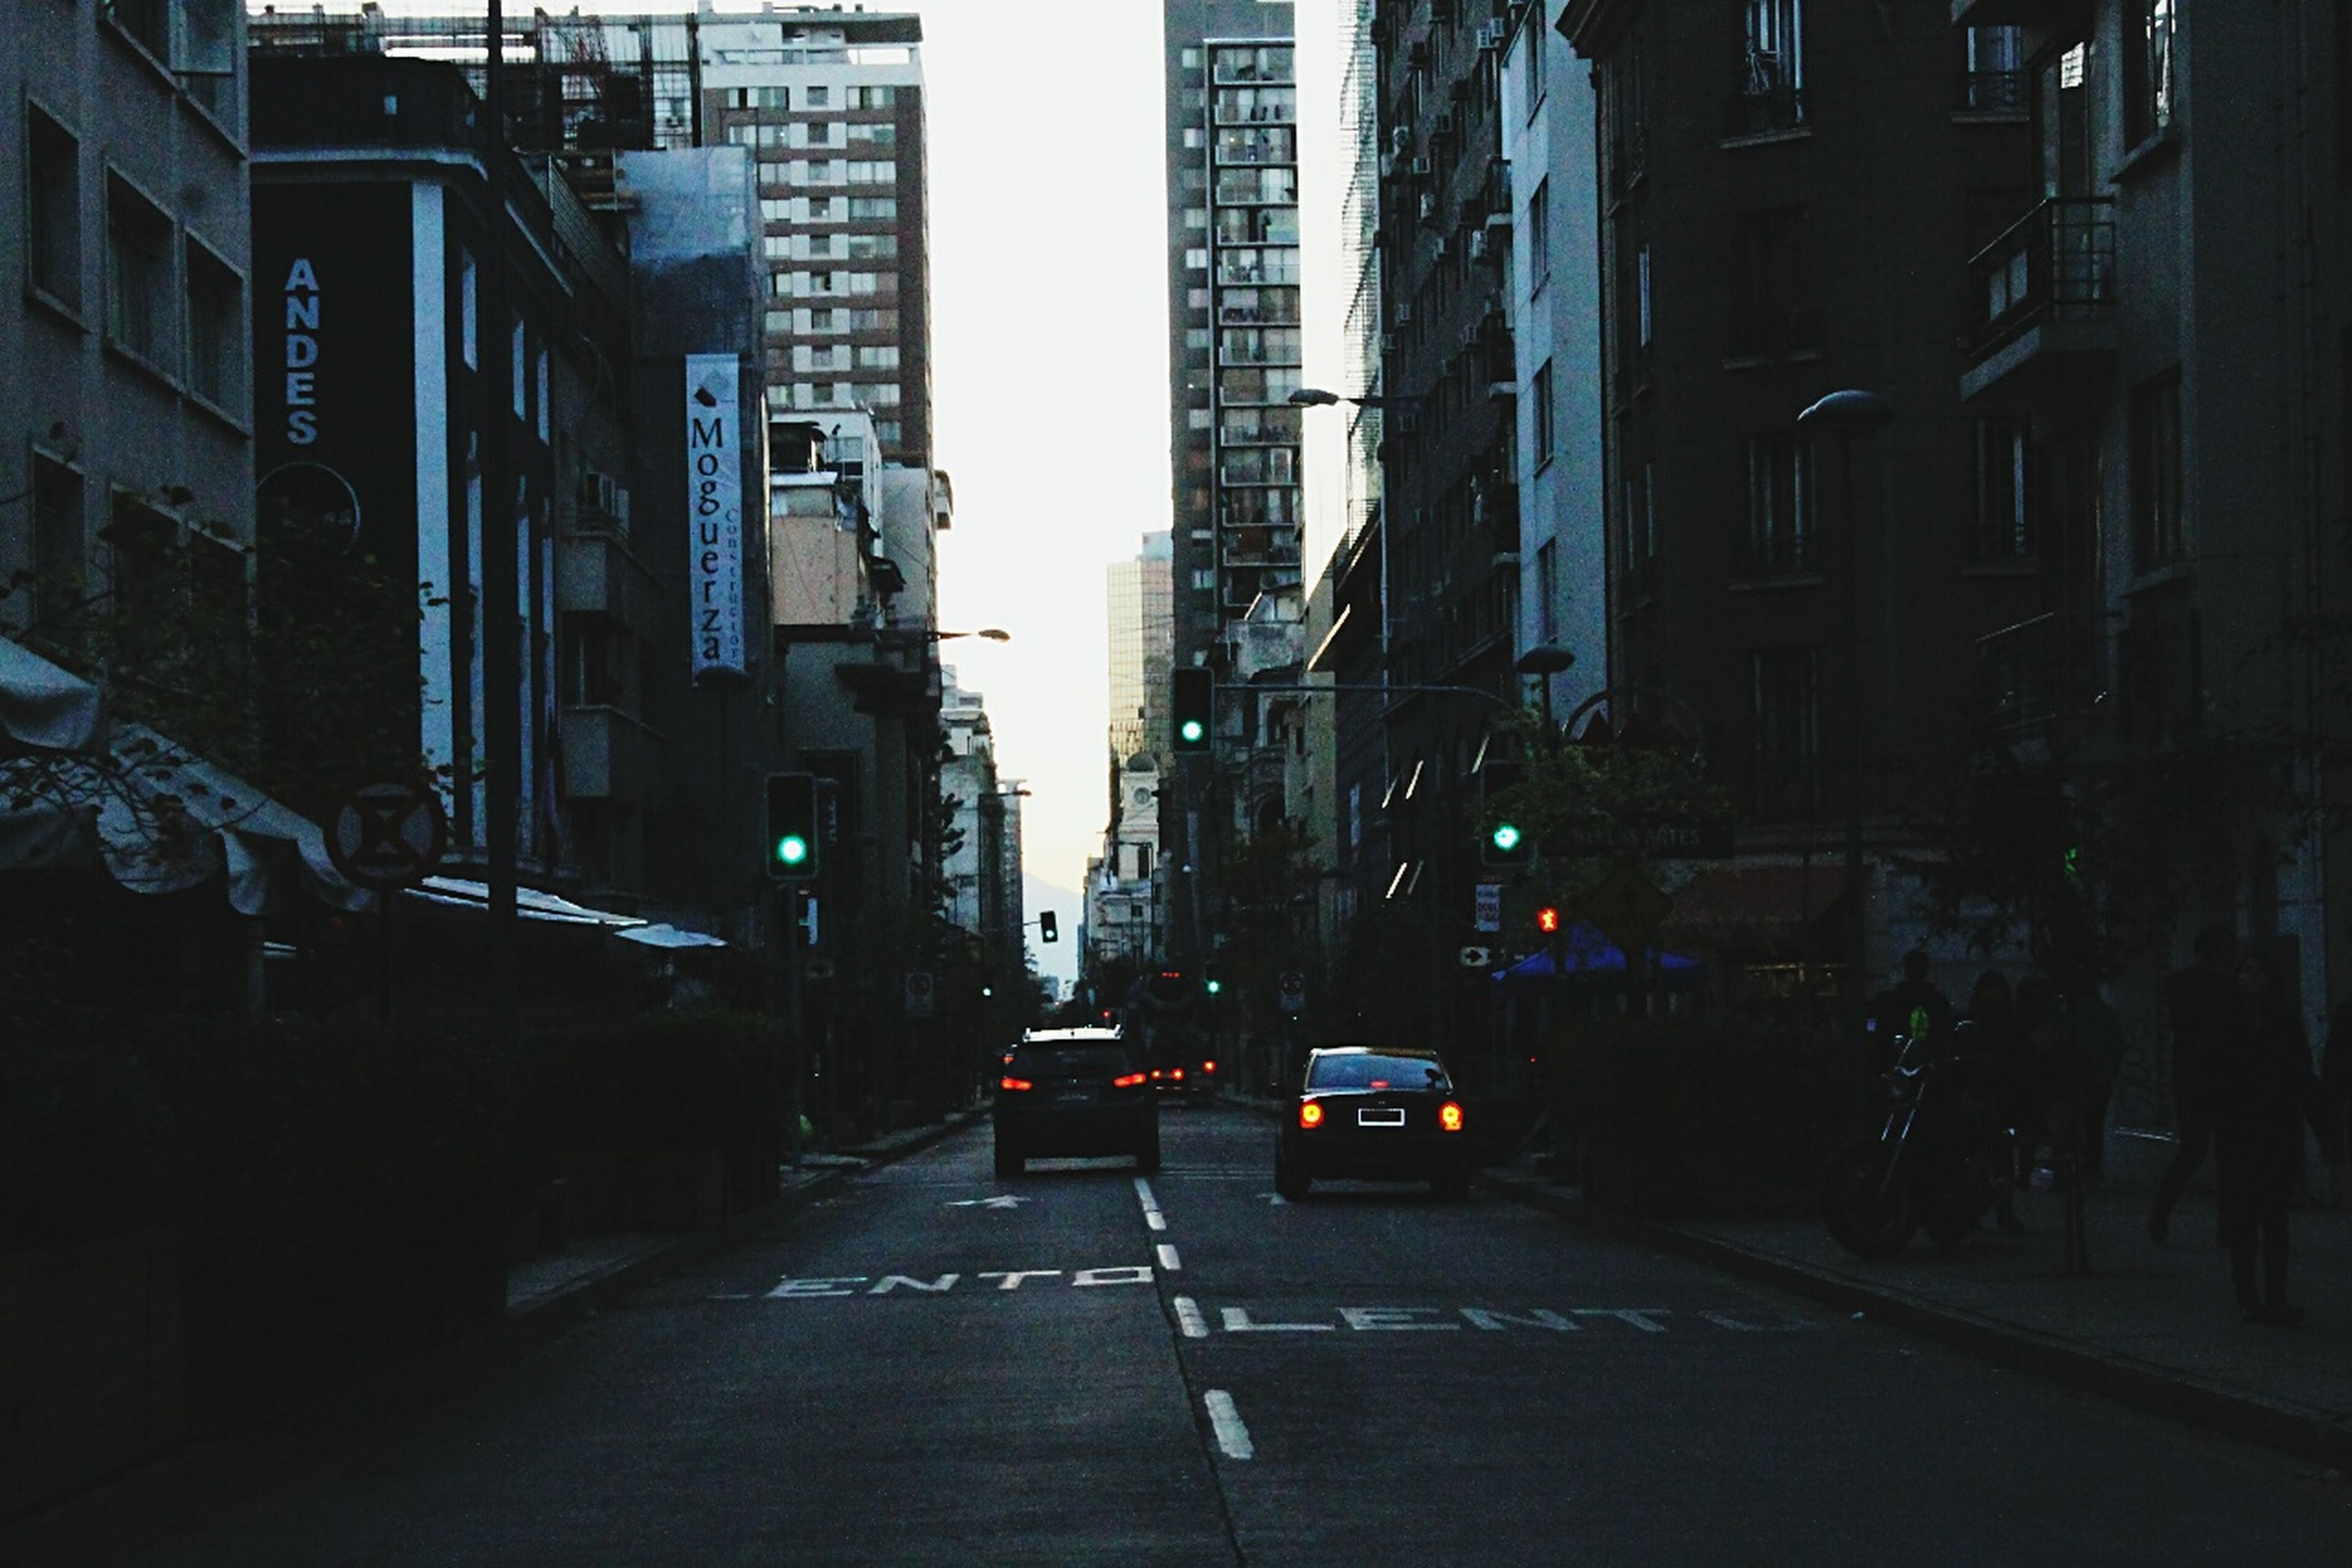 city, car, transportation, street, architecture, building exterior, city street, built structure, the way forward, traffic, road, land vehicle, city life, no people, outdoors, yellow taxi, illuminated, skyscraper, day, sky